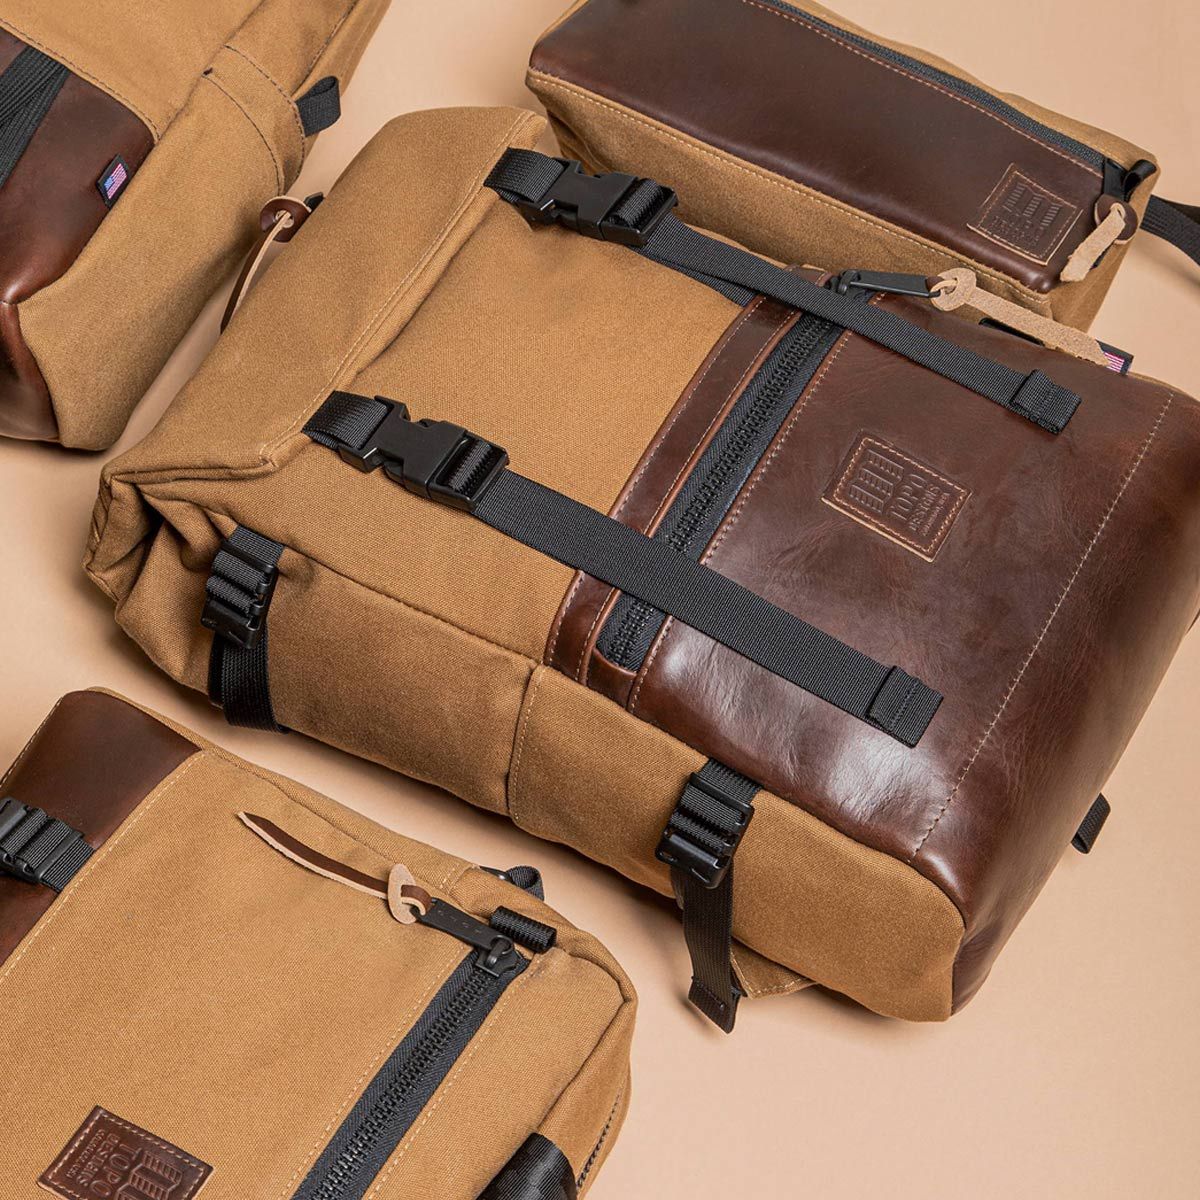 Topo Designs Rover Pack Heritage Dark Khaki Canvas/Brown Leather, durable, lightweight and water-resistant pack for daily use